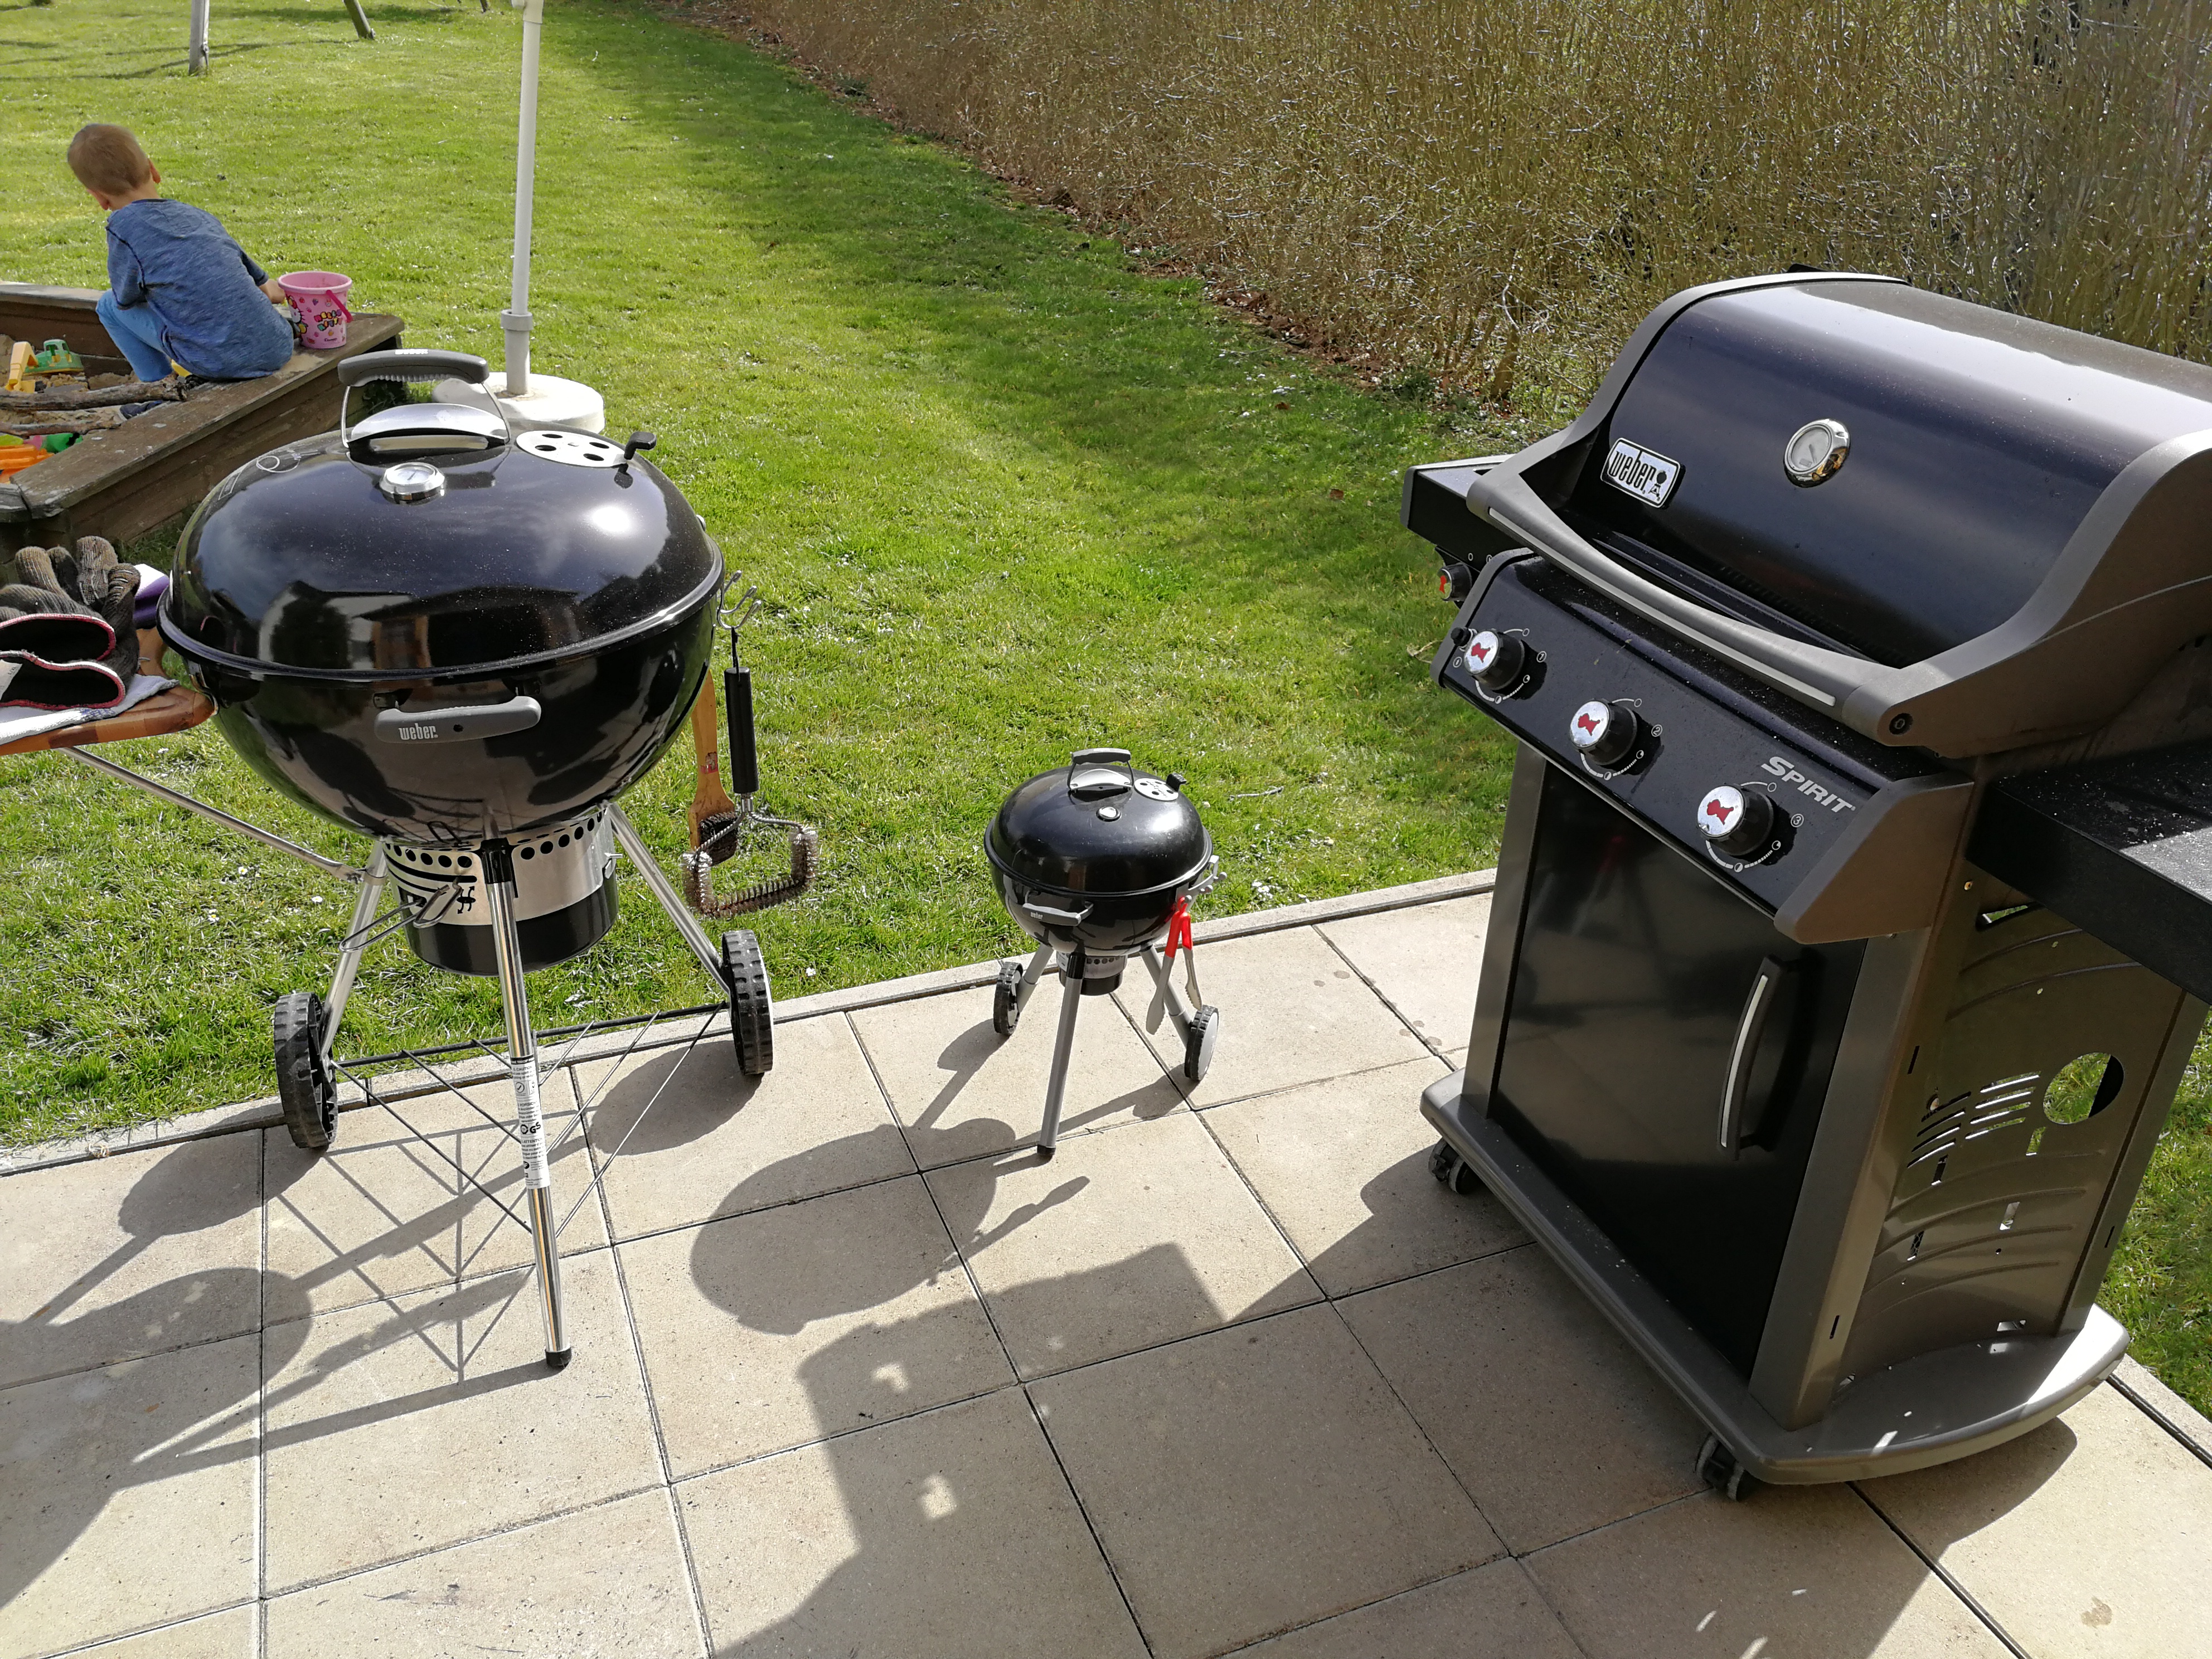 Landmann Gasgrill Wok : Grill fleisch auf feuer off topic forum monstercafe das